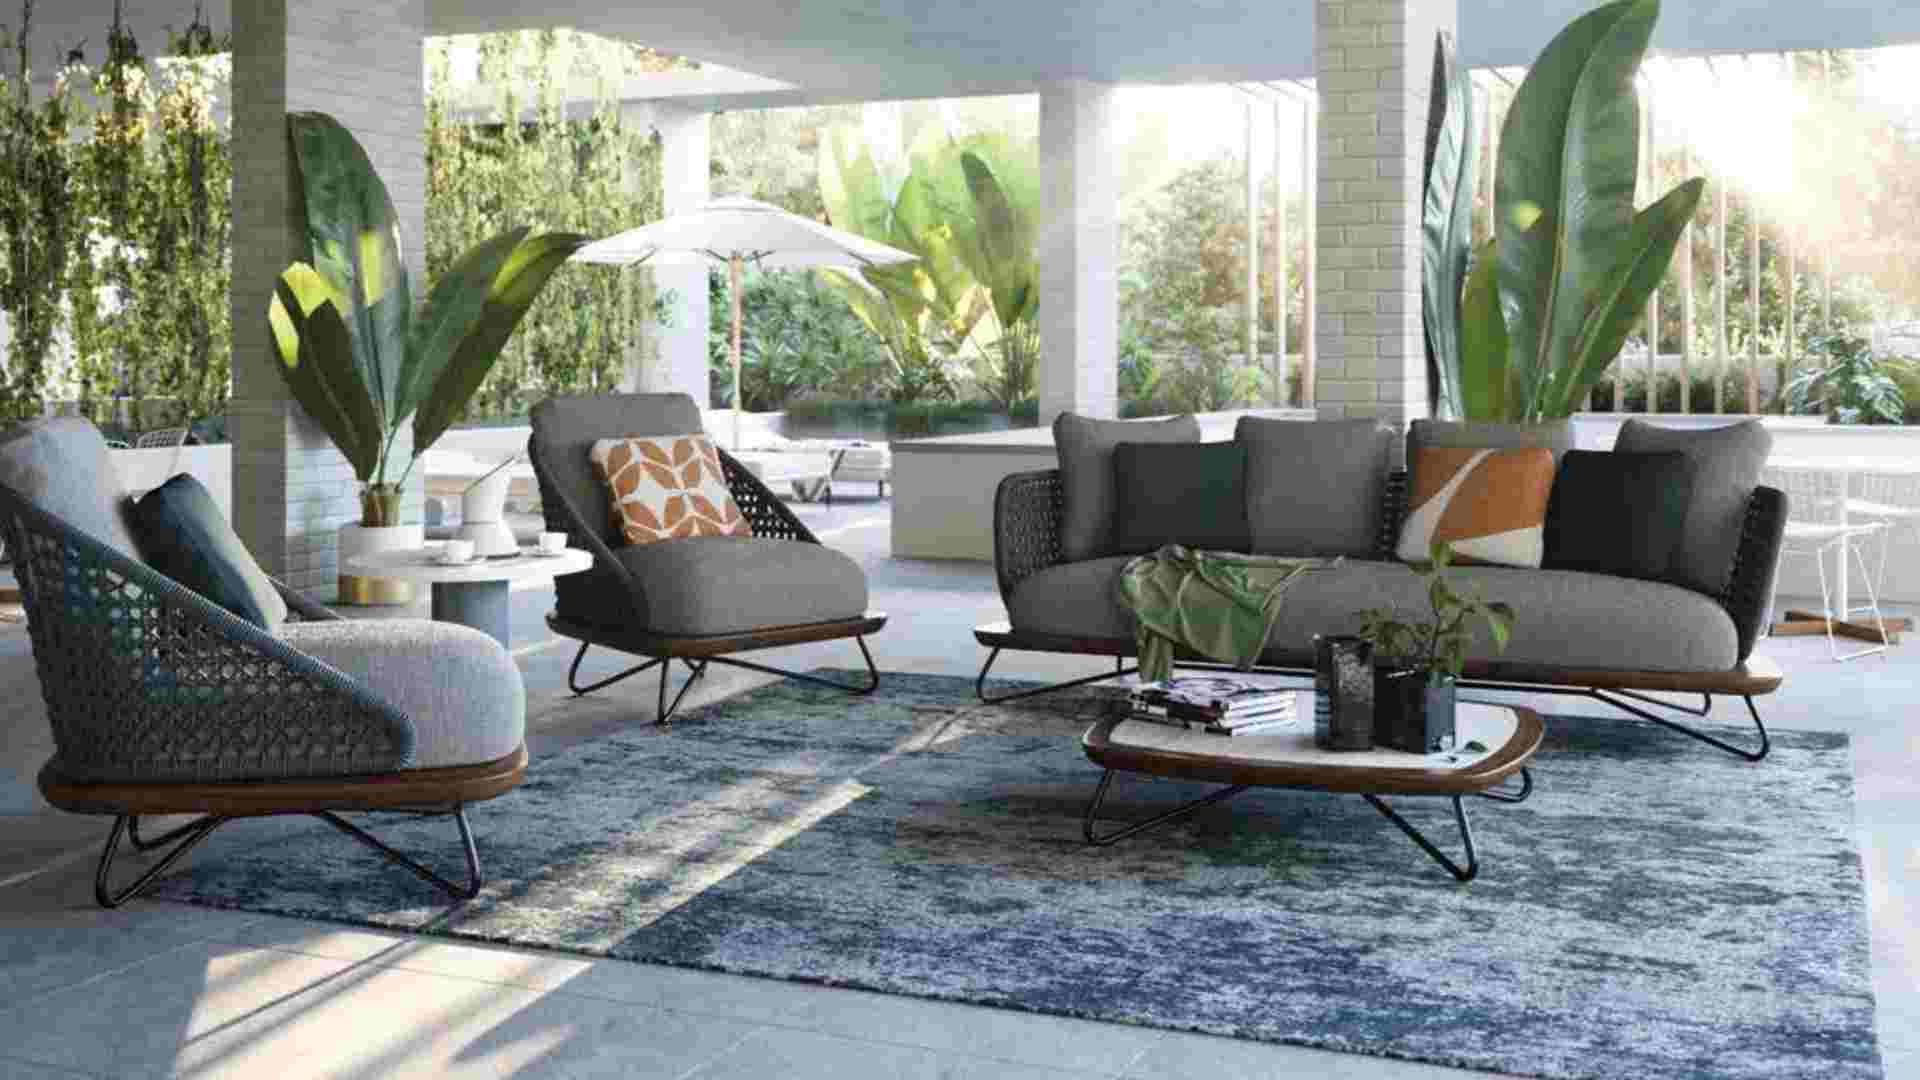 grey outdoor lounge on rug, large green plants